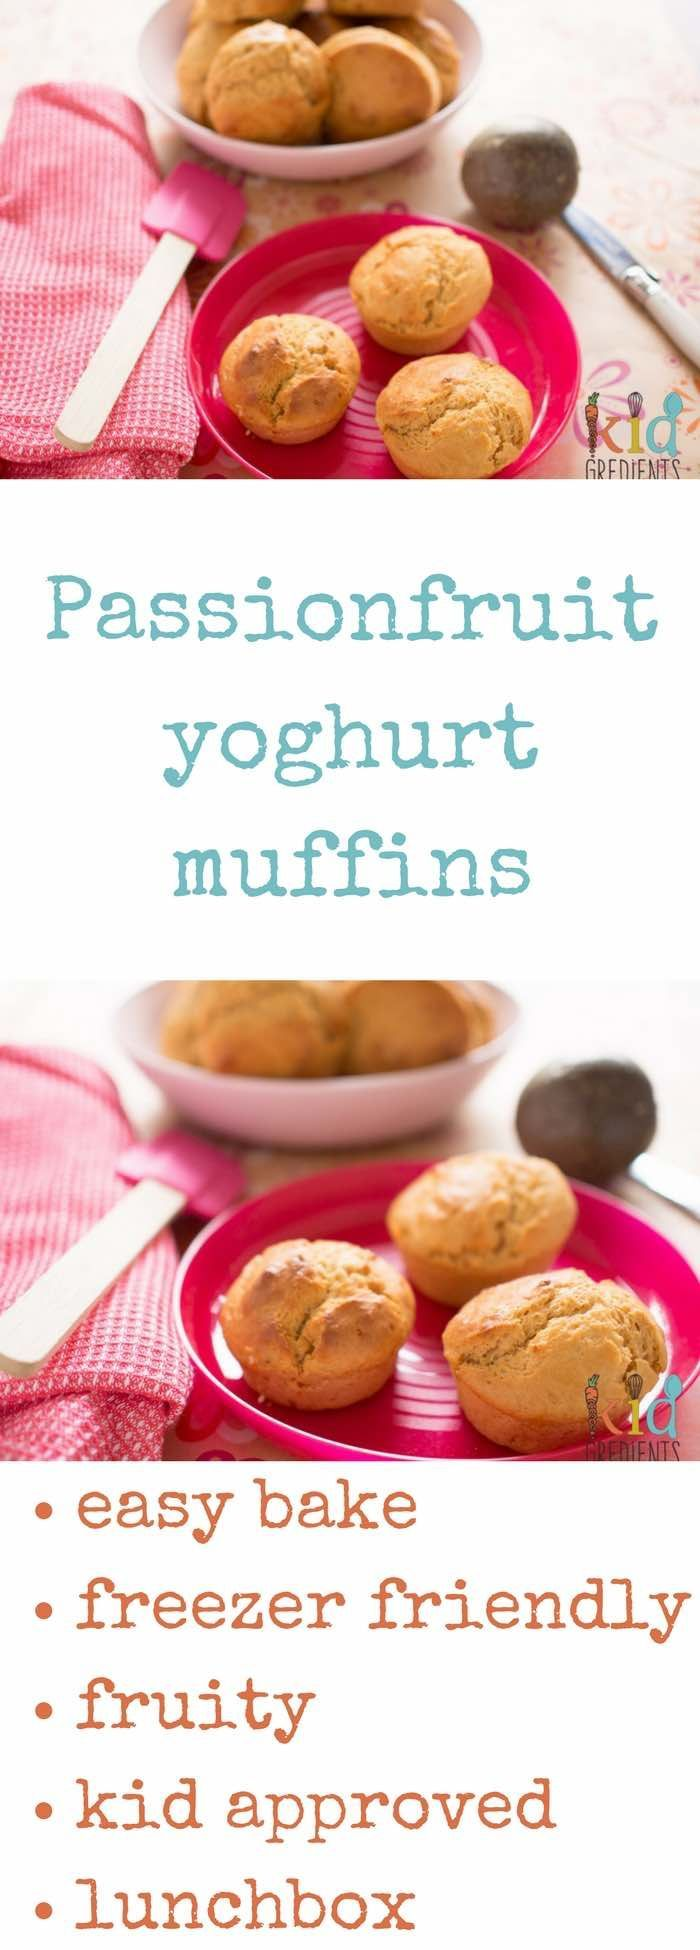 Yummy passionfruit yoghurt muffins, perfect for the lunchbox, freezer friendly and totally kid approved!  With the added bonus of yoghurt these are the perfect snack, afternoon tea or lunchbox treat! via @kidgredients